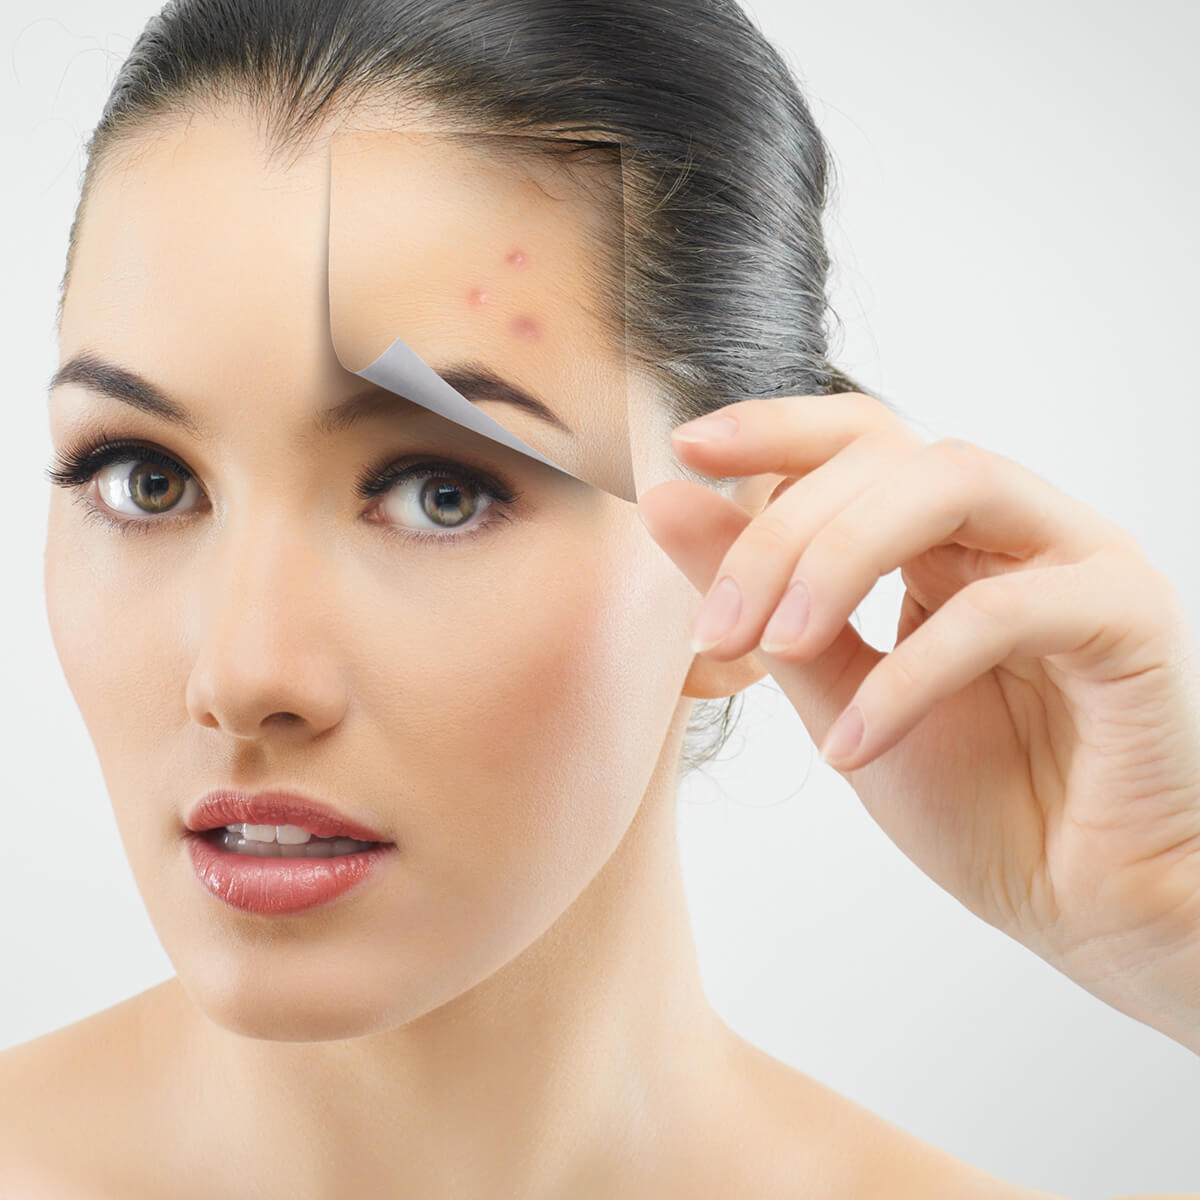 Learn More About Acne Scar Treatment Using Lasers, Chemical Peels, and Fillers with Walnut Creek, CA Area